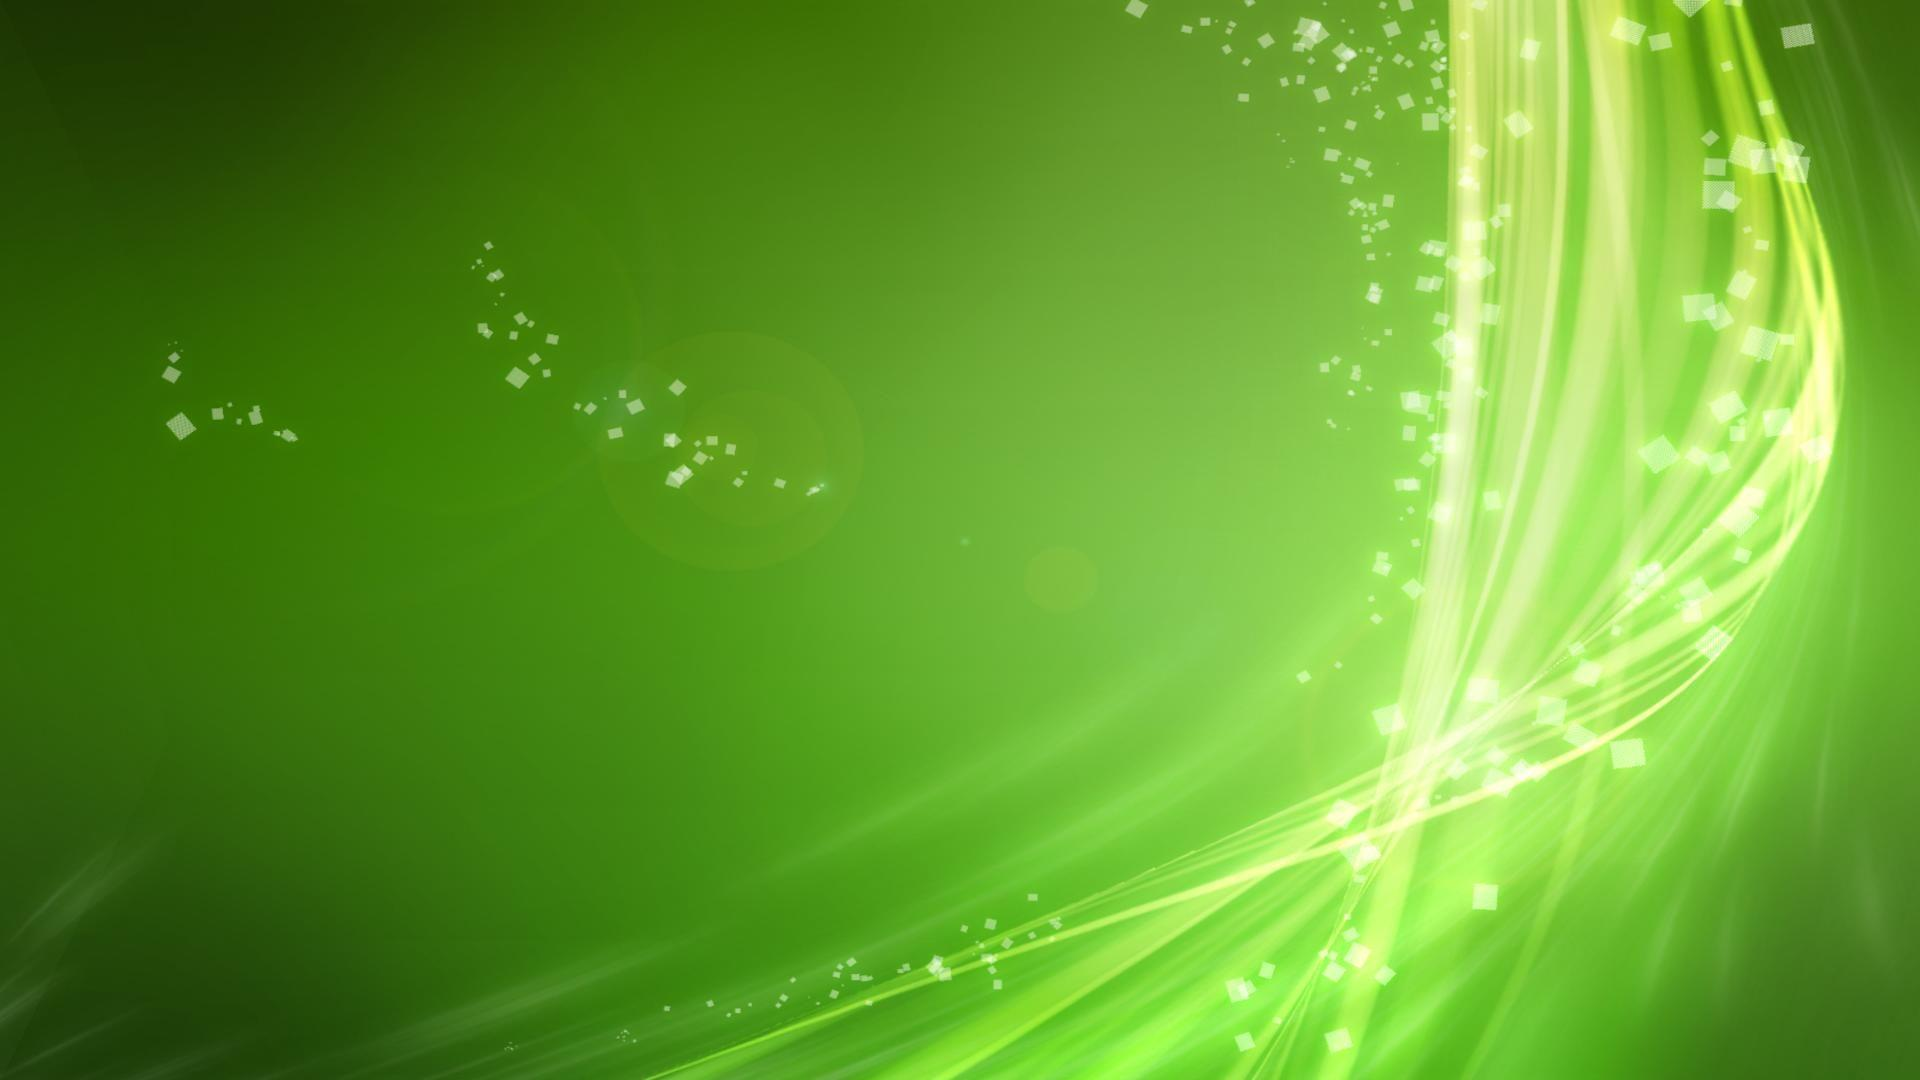 green background by l0rdn1k0n - photo #21